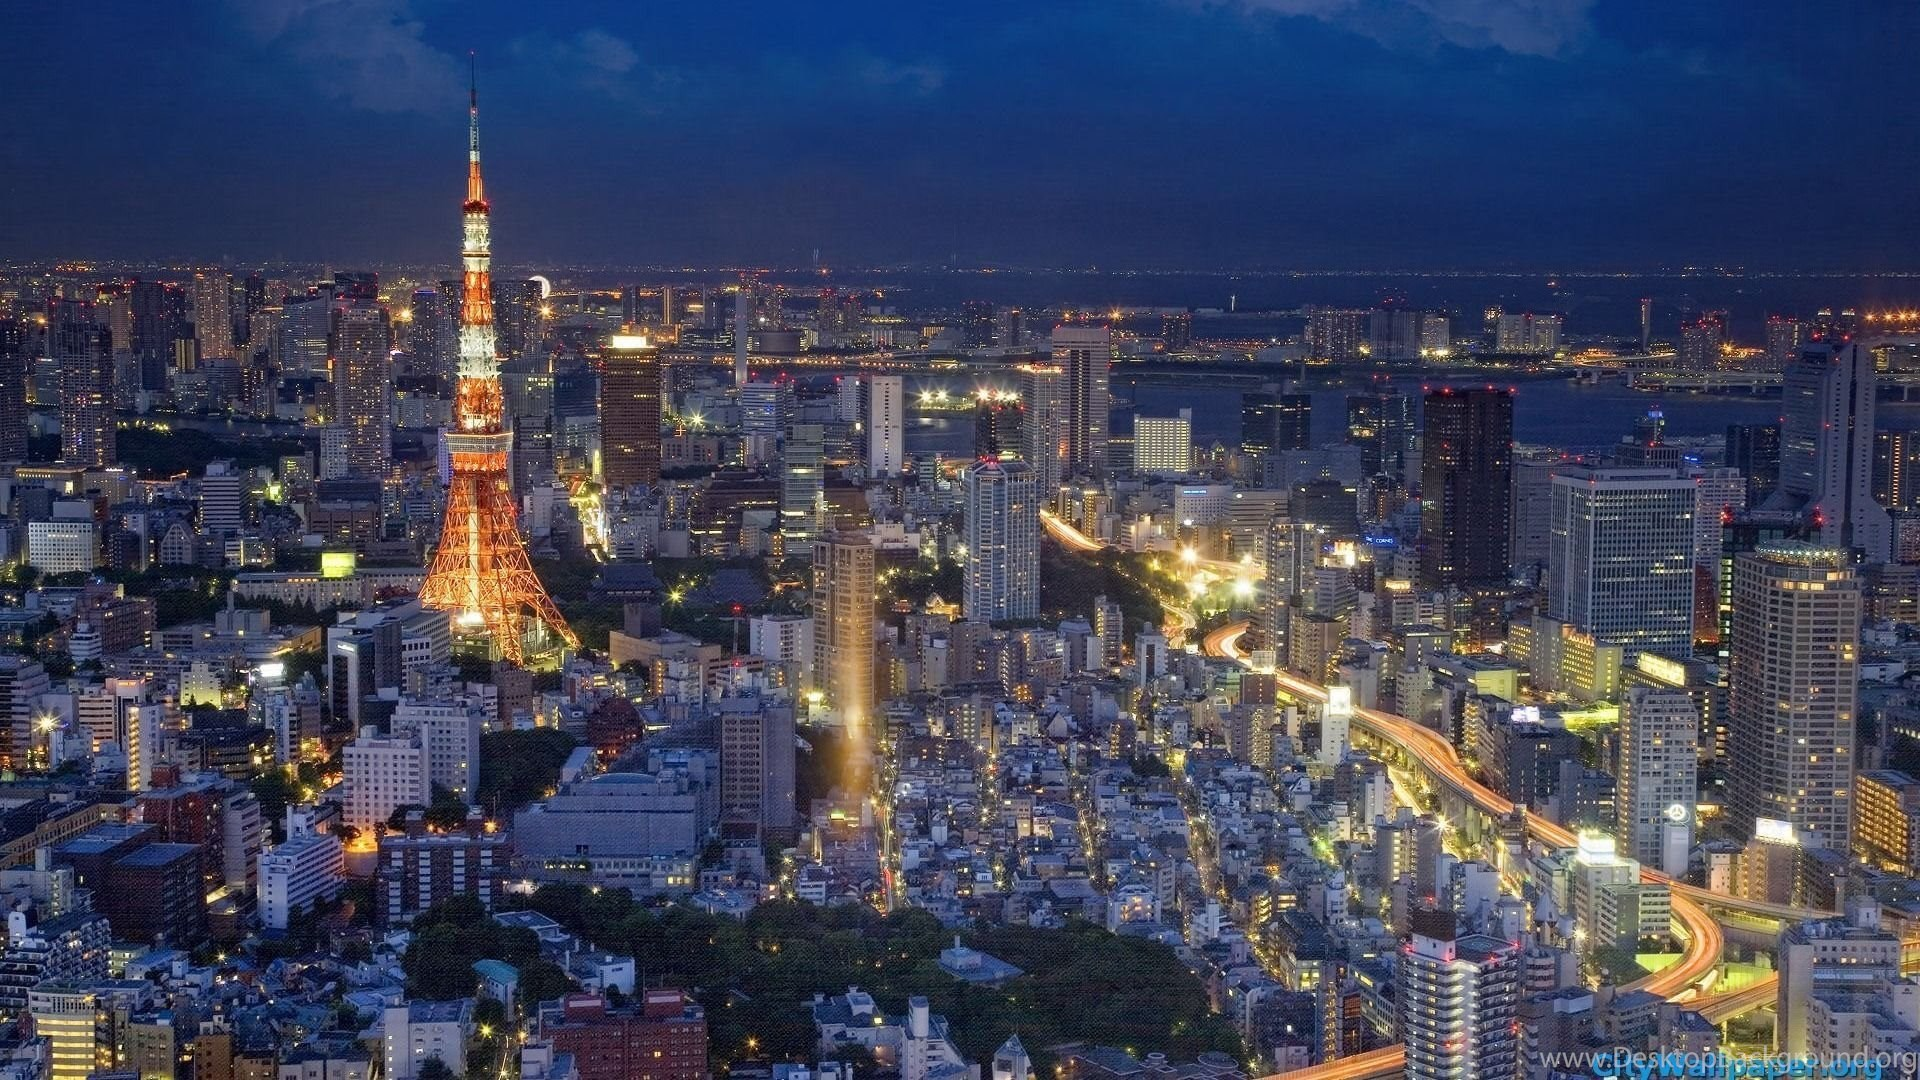 Tokyo Tower Japan Cities Landscape Photography Wallpapers 07